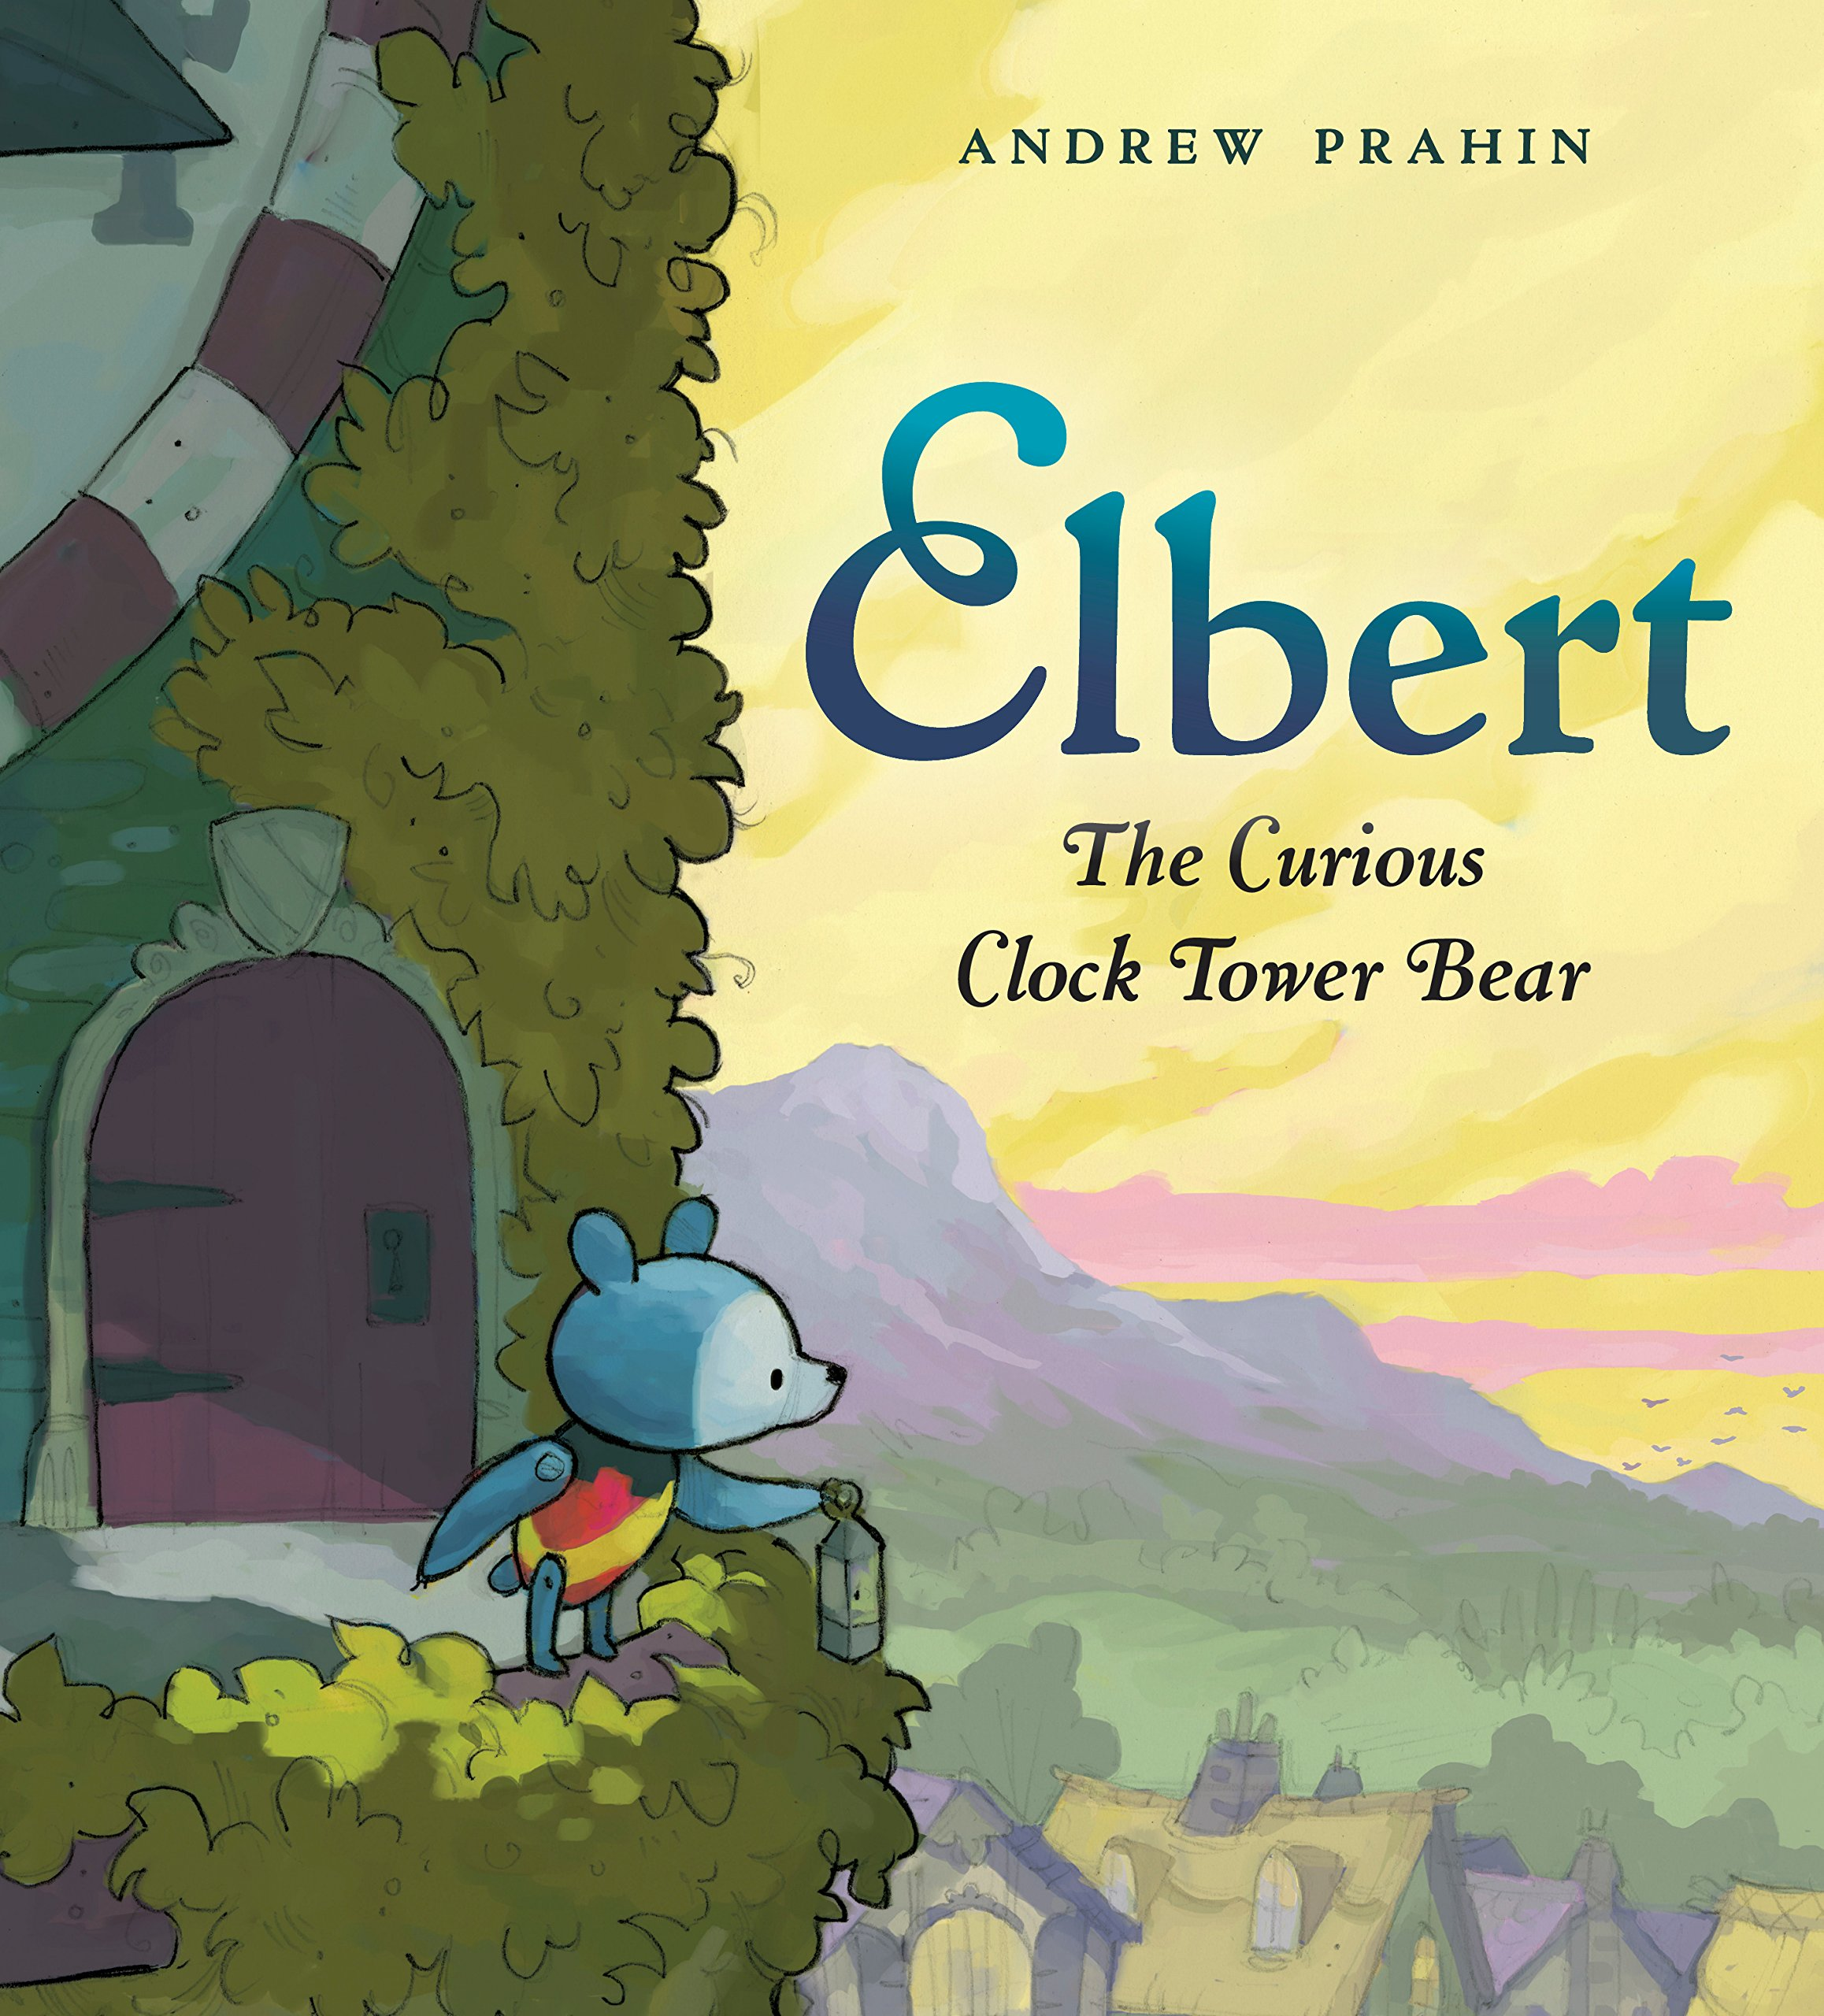 Prahin, Andrew 2019_03 - ELBERT THE CURIOUS CLOCK TOWER BEAR - PB - RLM PR.jpg